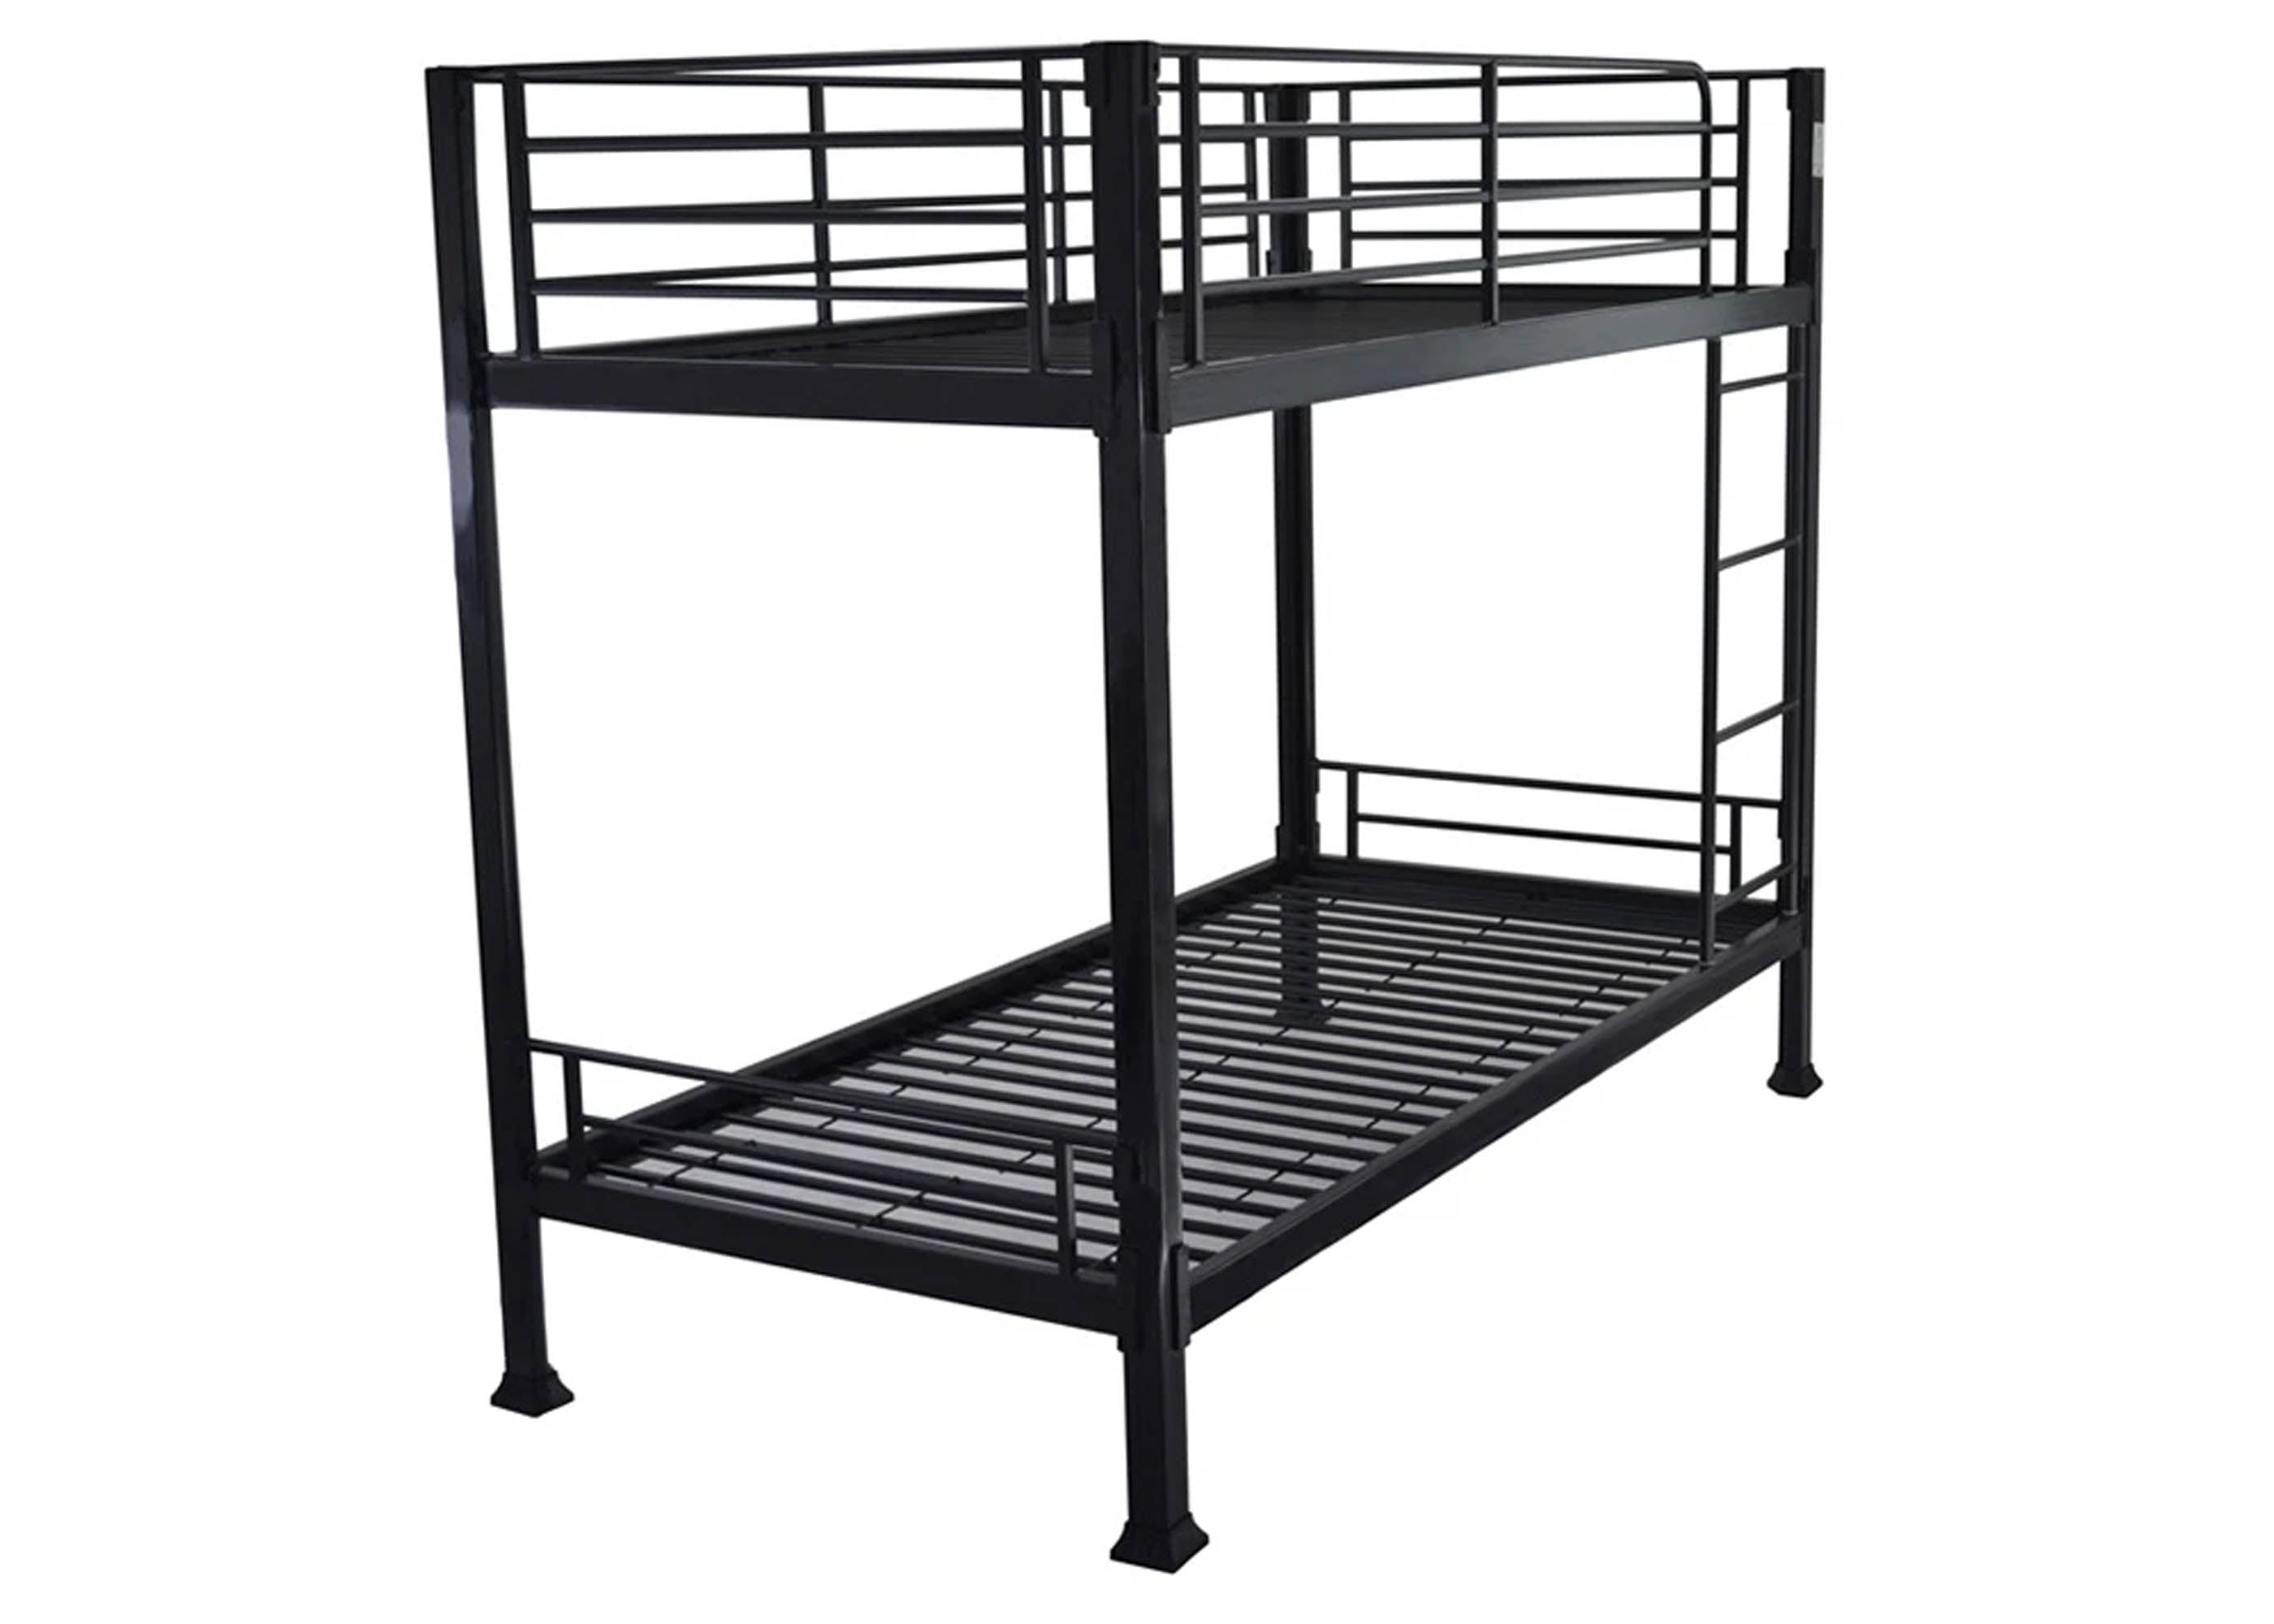 Very Strong Metal Contract Bunk Bed Reinforced Beds